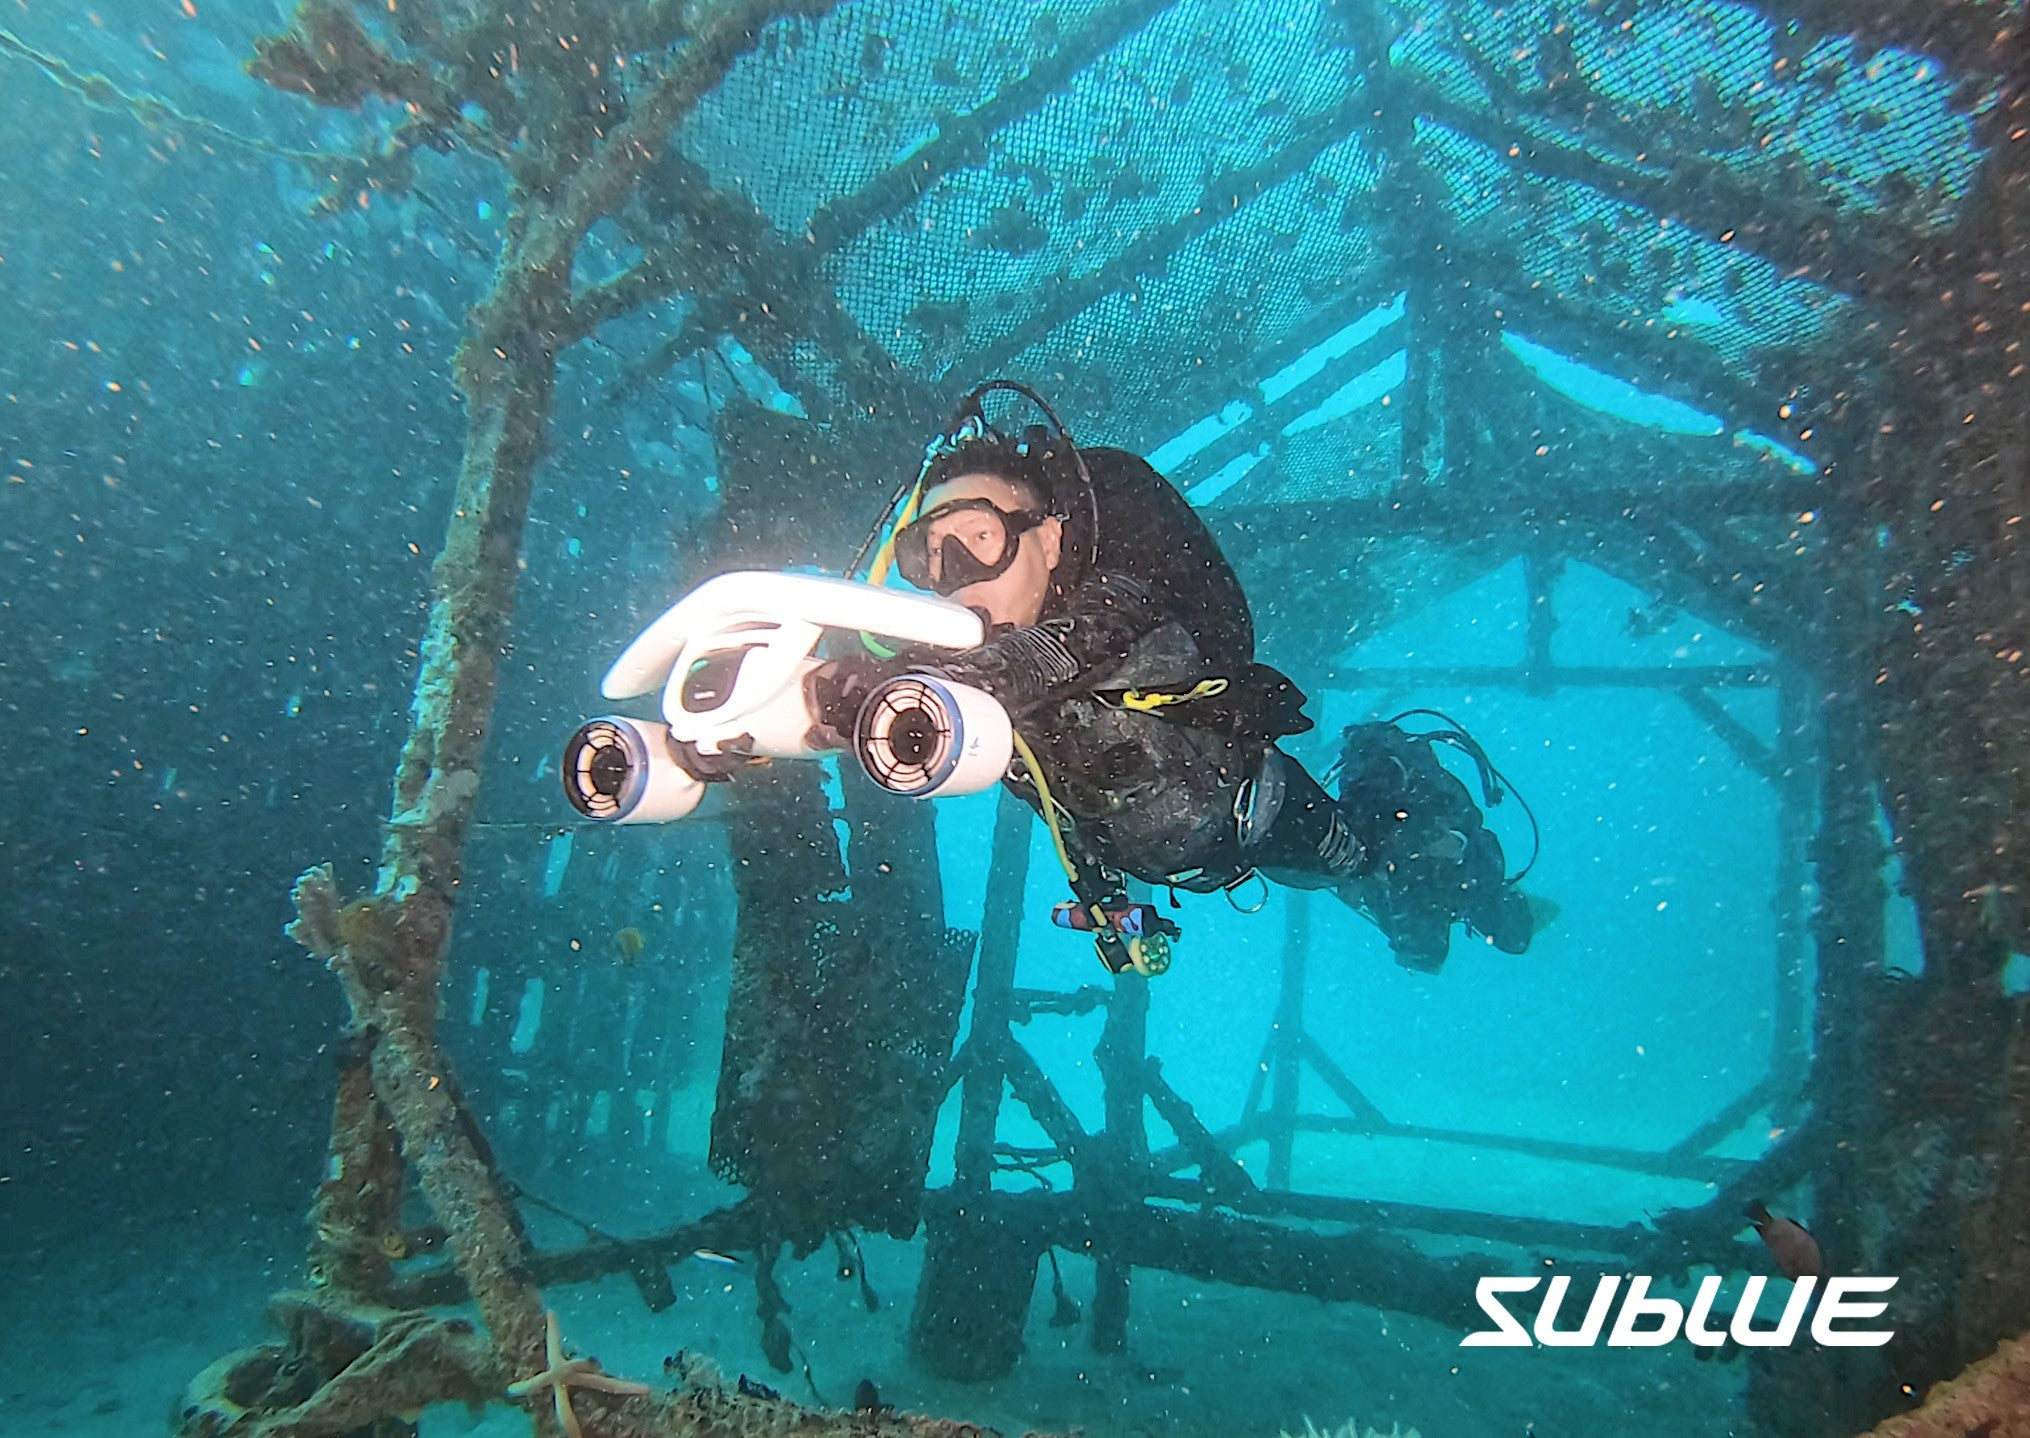 Picture of scuba divers under water in a cage swimming with a Sublue self-propelled handheld scooter.